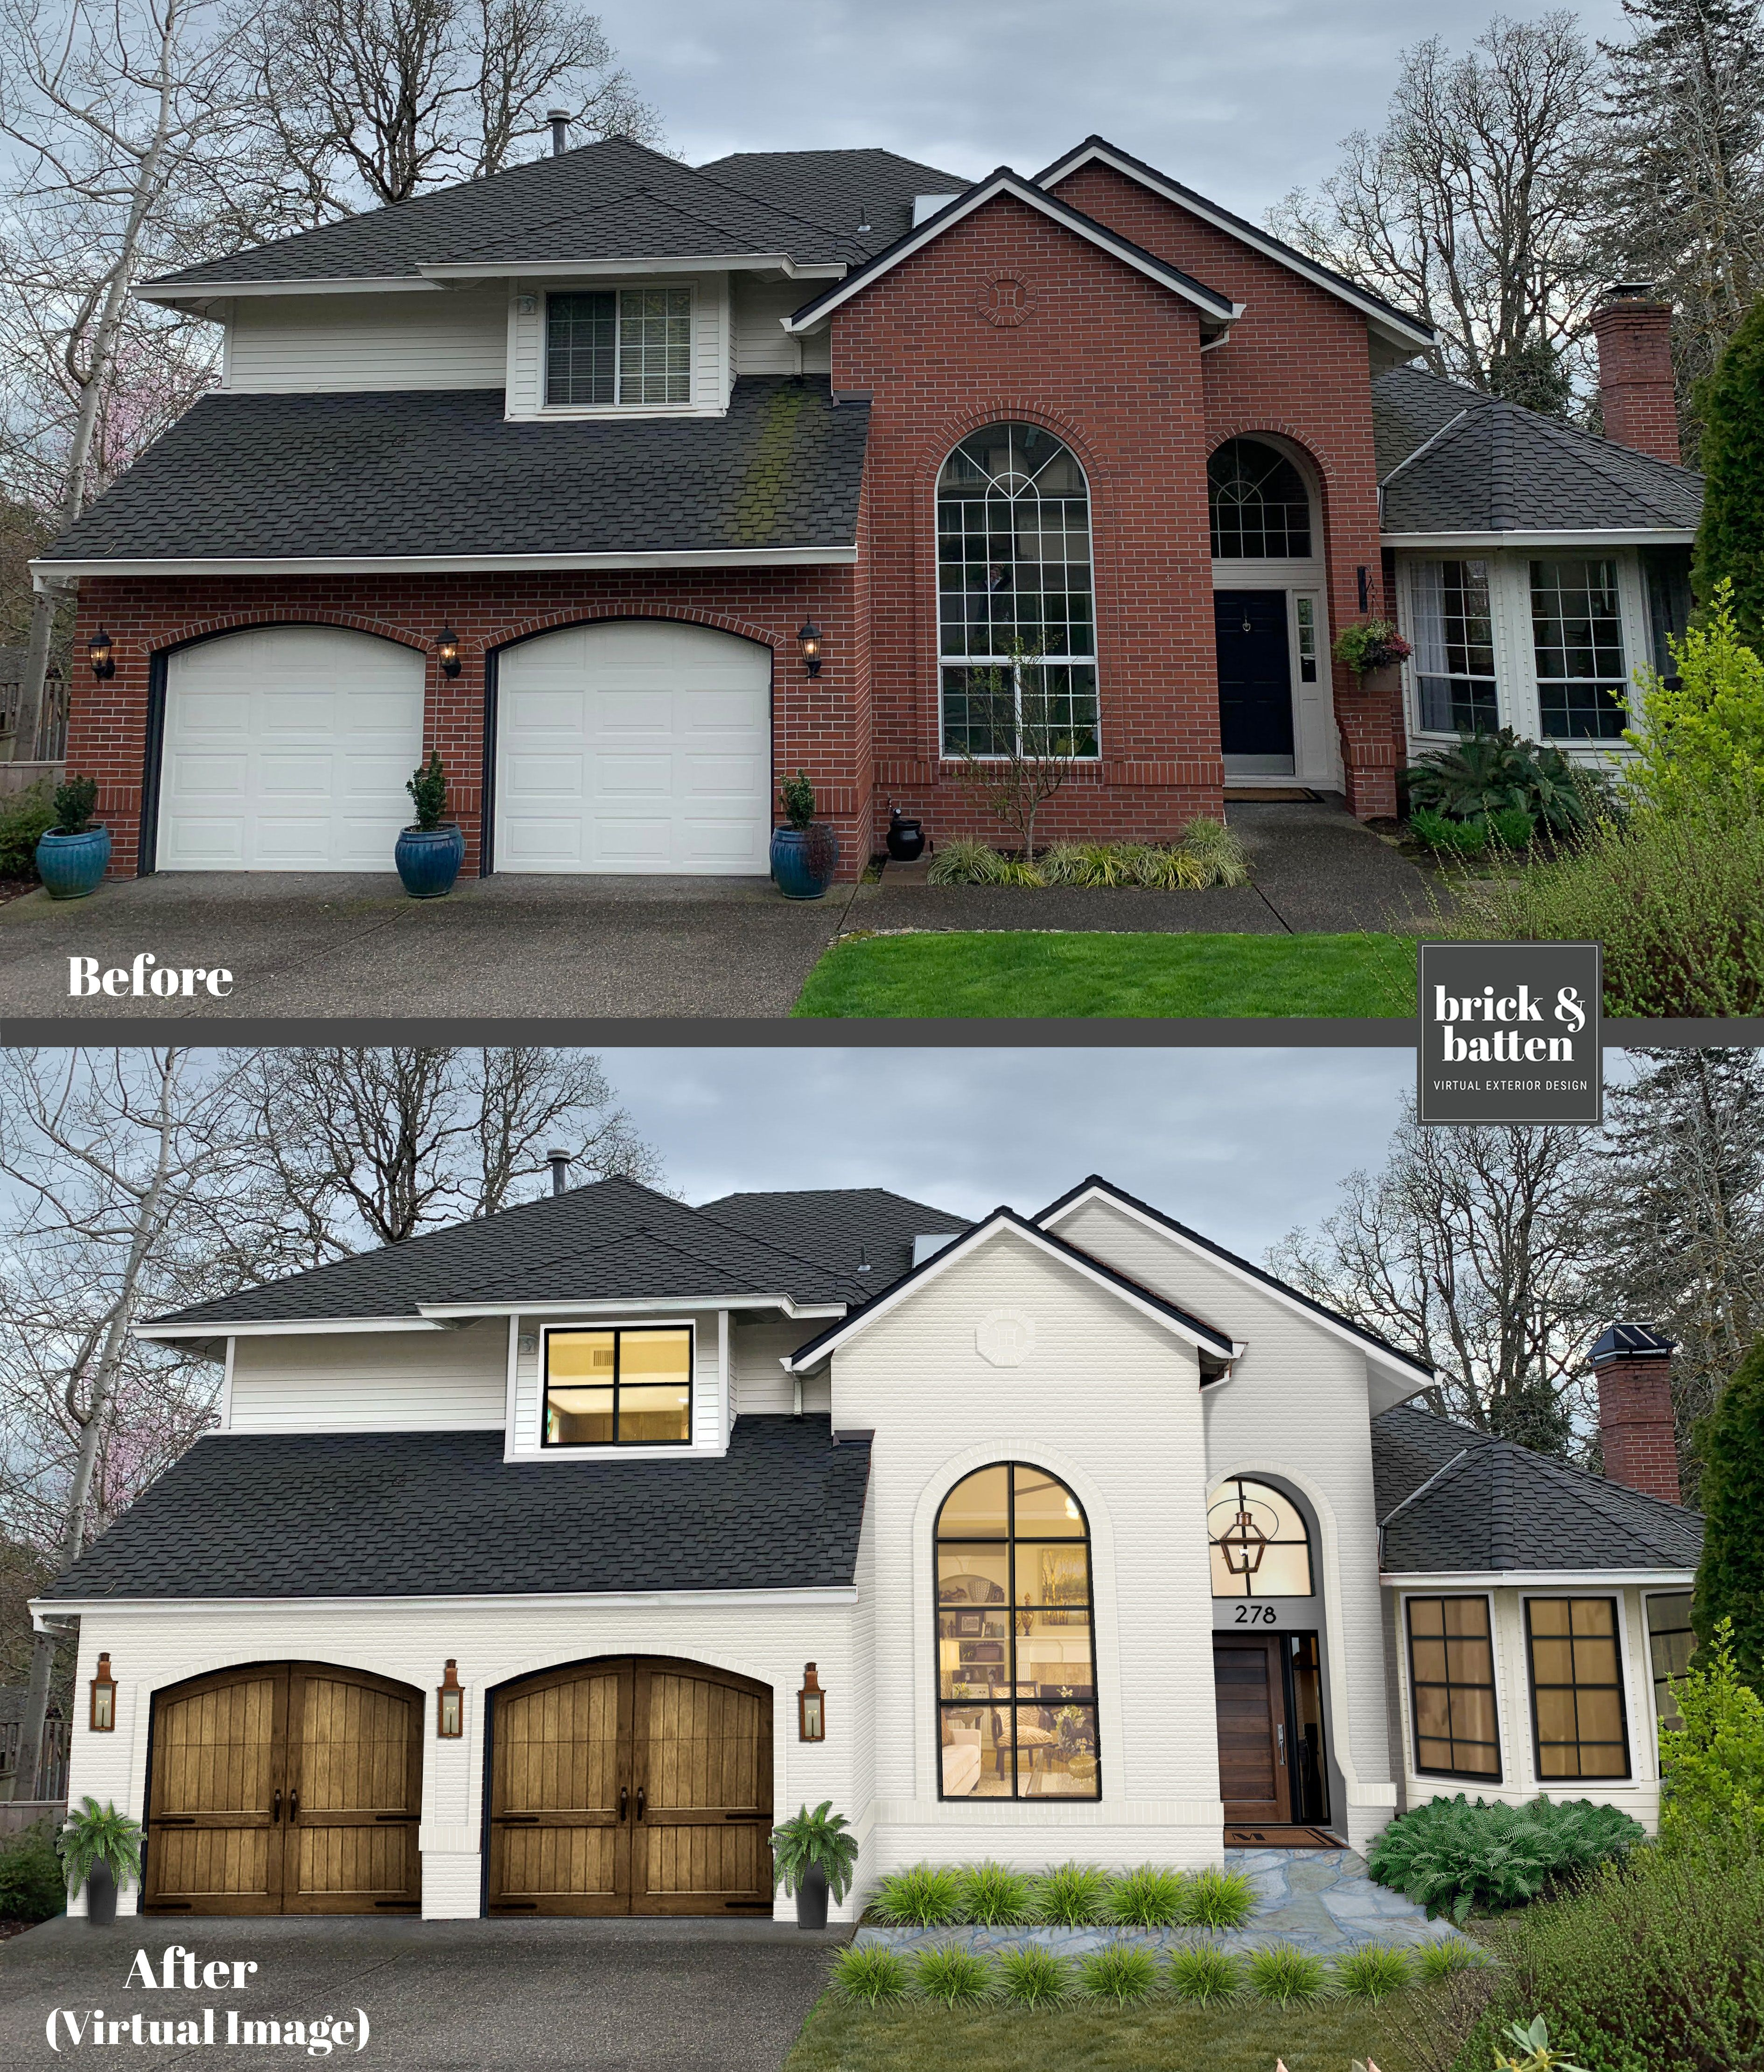 8 Things You Can Do To Improve Your Curb Appeal   Blog   brick&batten